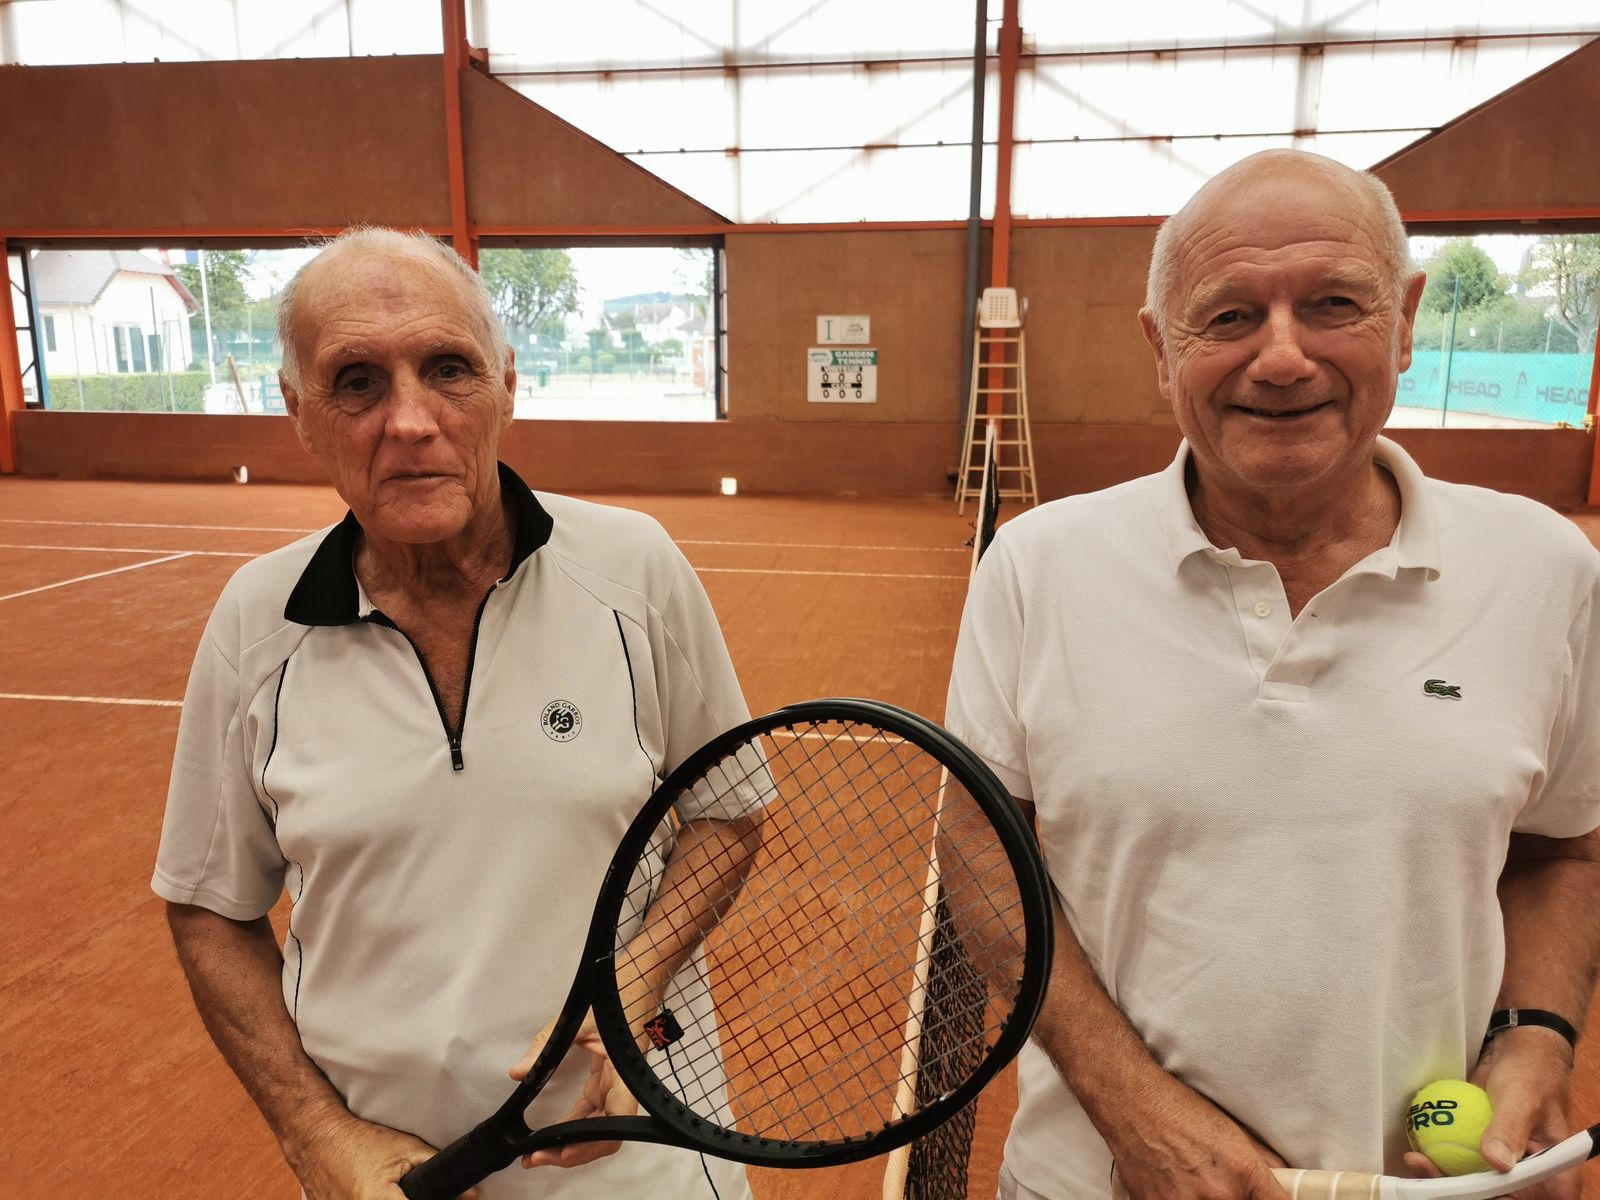 Philippe Gespach 30/2 Villers s/mer gagne contre Michel Didierjean 30 Cabourg